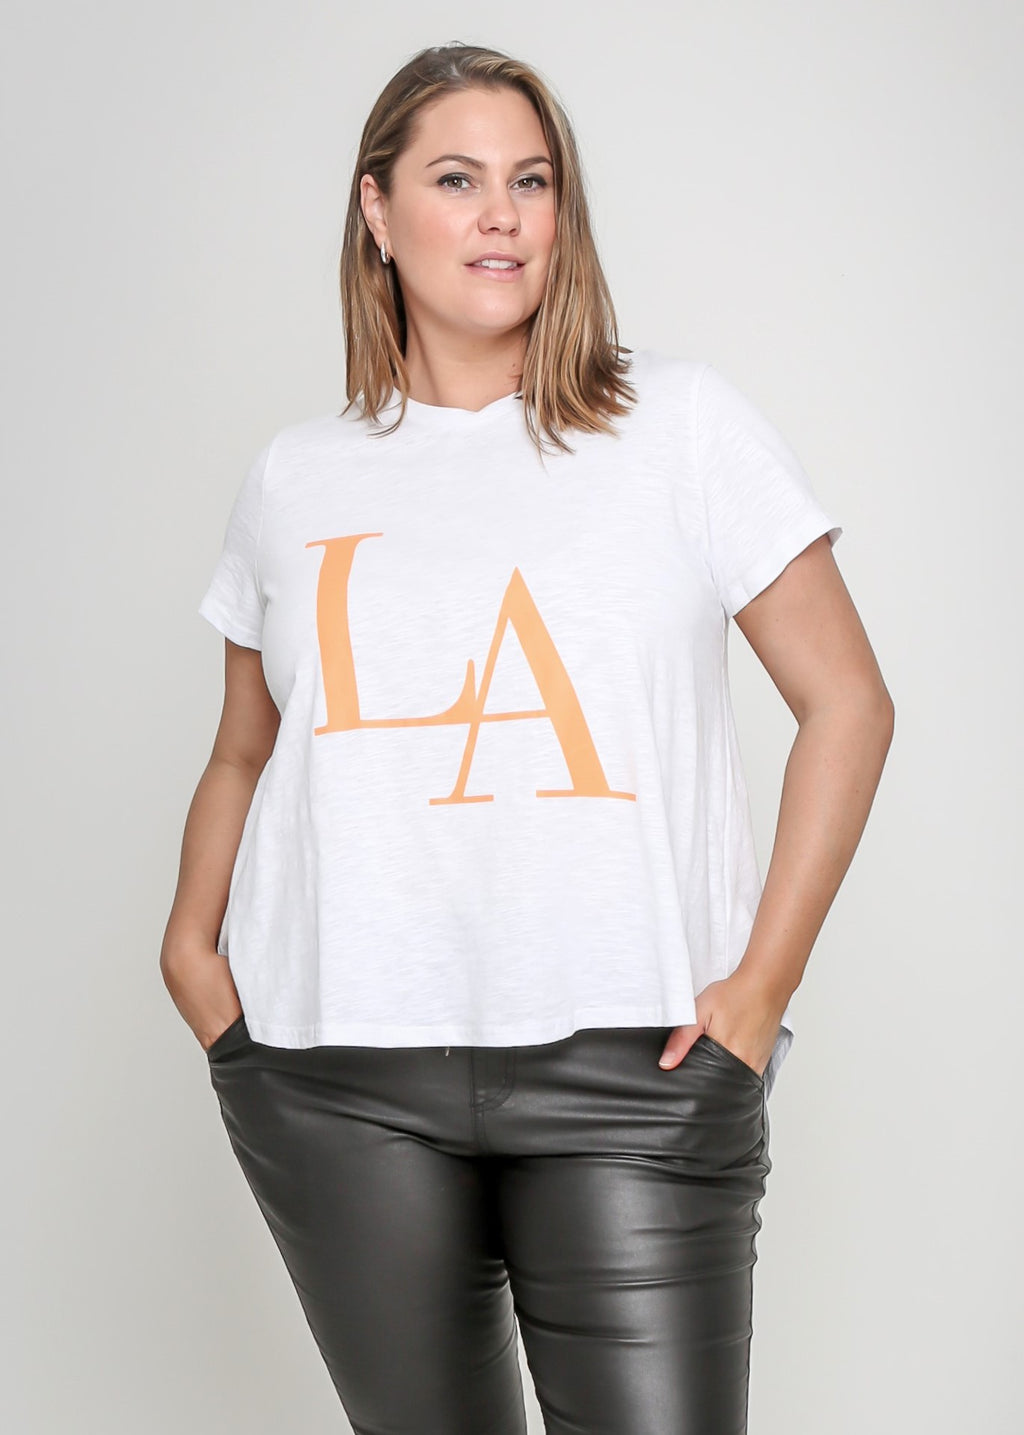 LARA TEE - ORANGE/WHITE